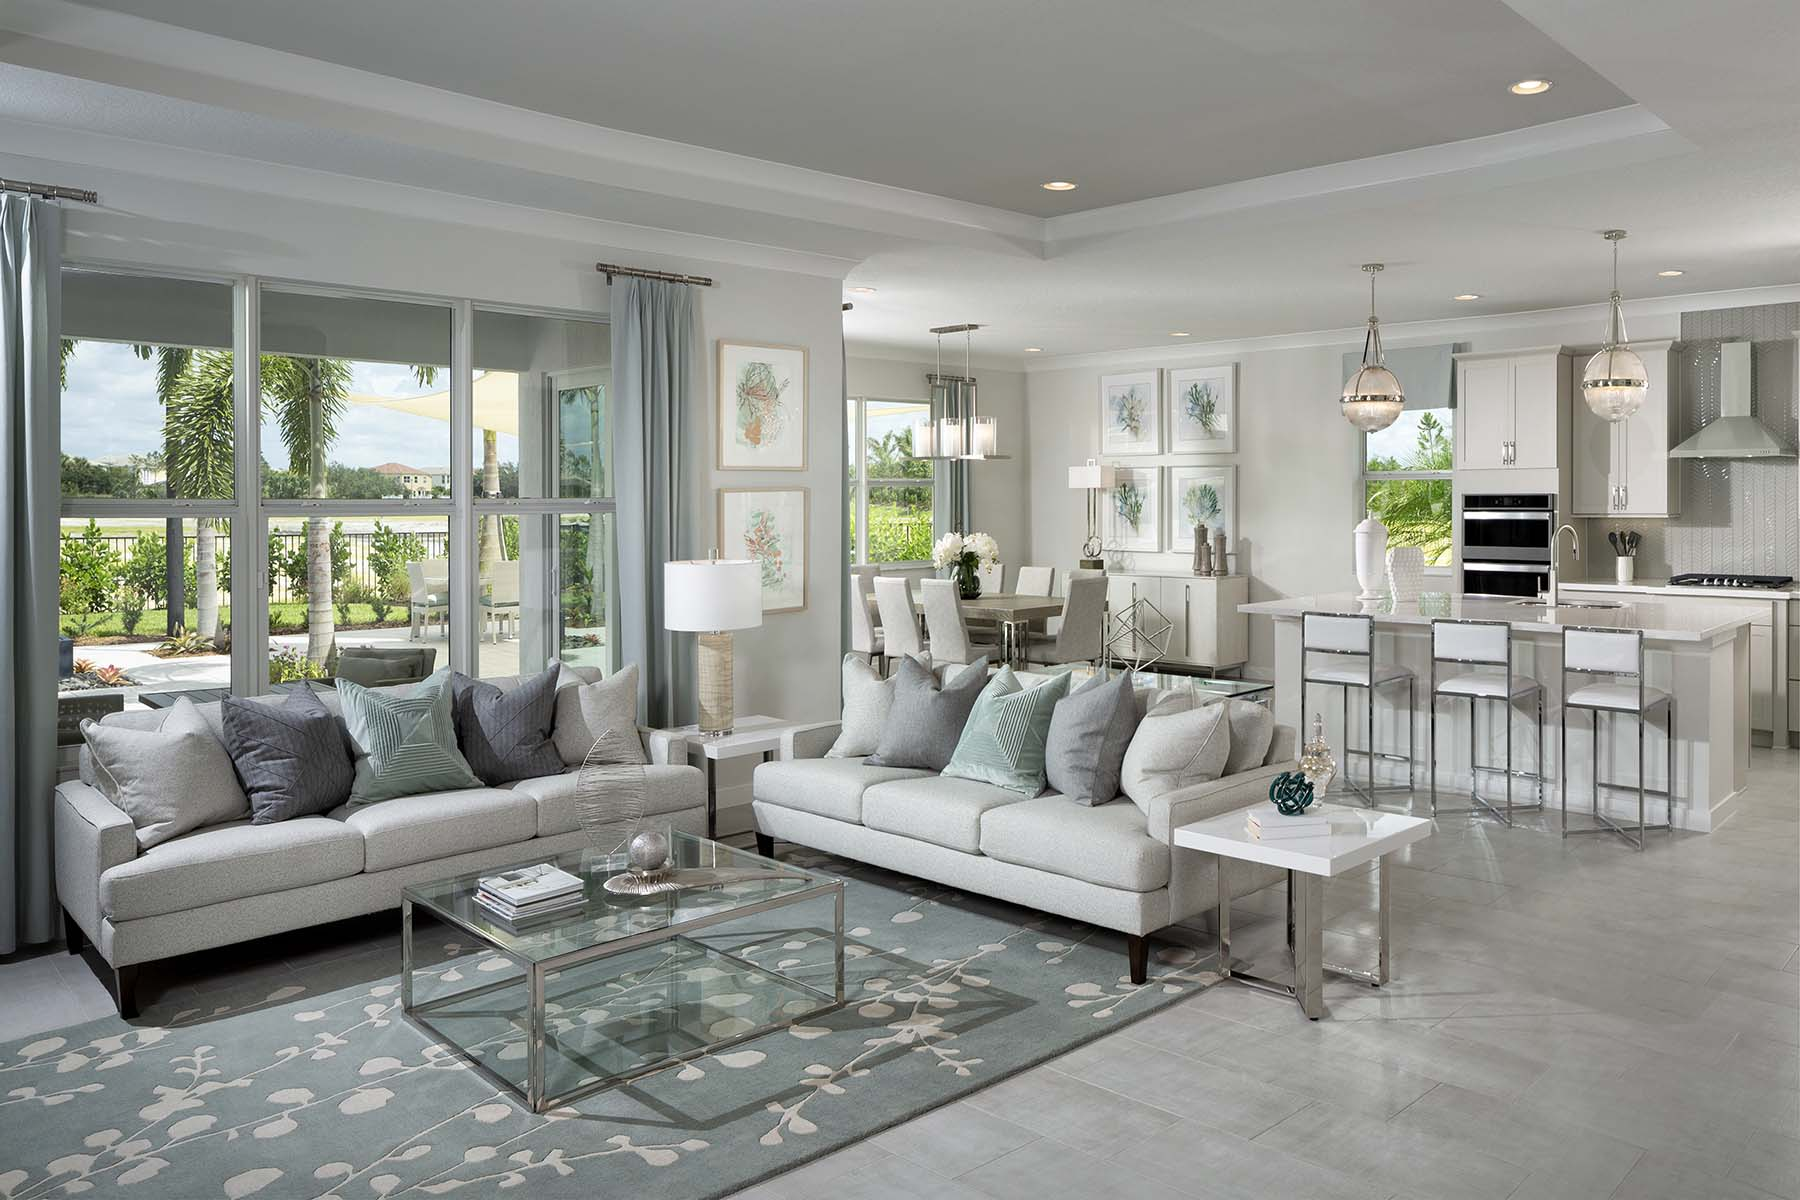 Rowan Plan Greatroom at Tradition - Manderlie in Port St. Lucie Florida by Mattamy Homes